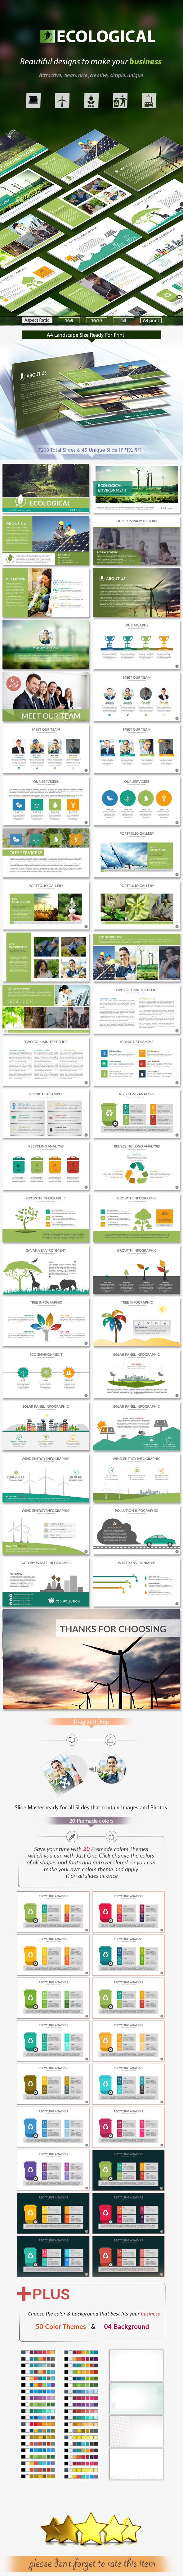 Ecological Powerpoint Presentation Template - Nature PowerPoint Templates